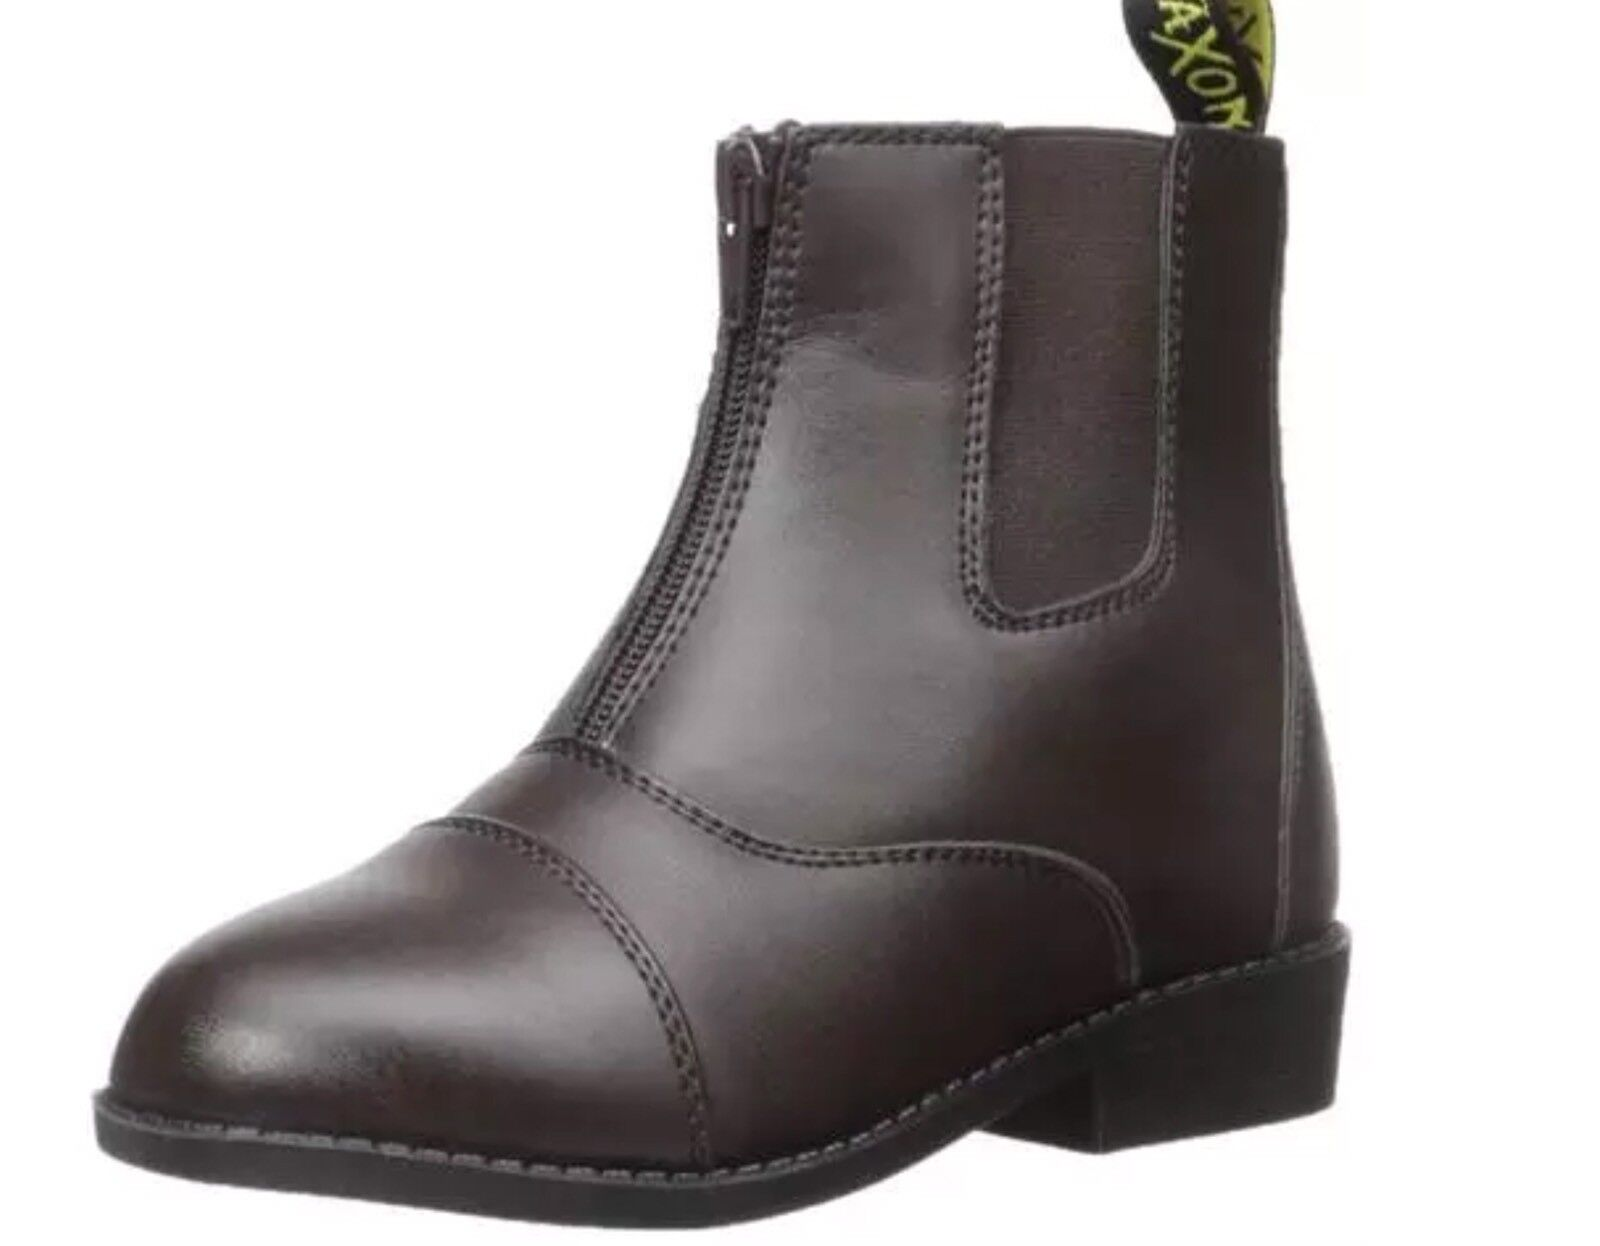 Saxon Women's Equileather Zip Front Boots Brown Size 7